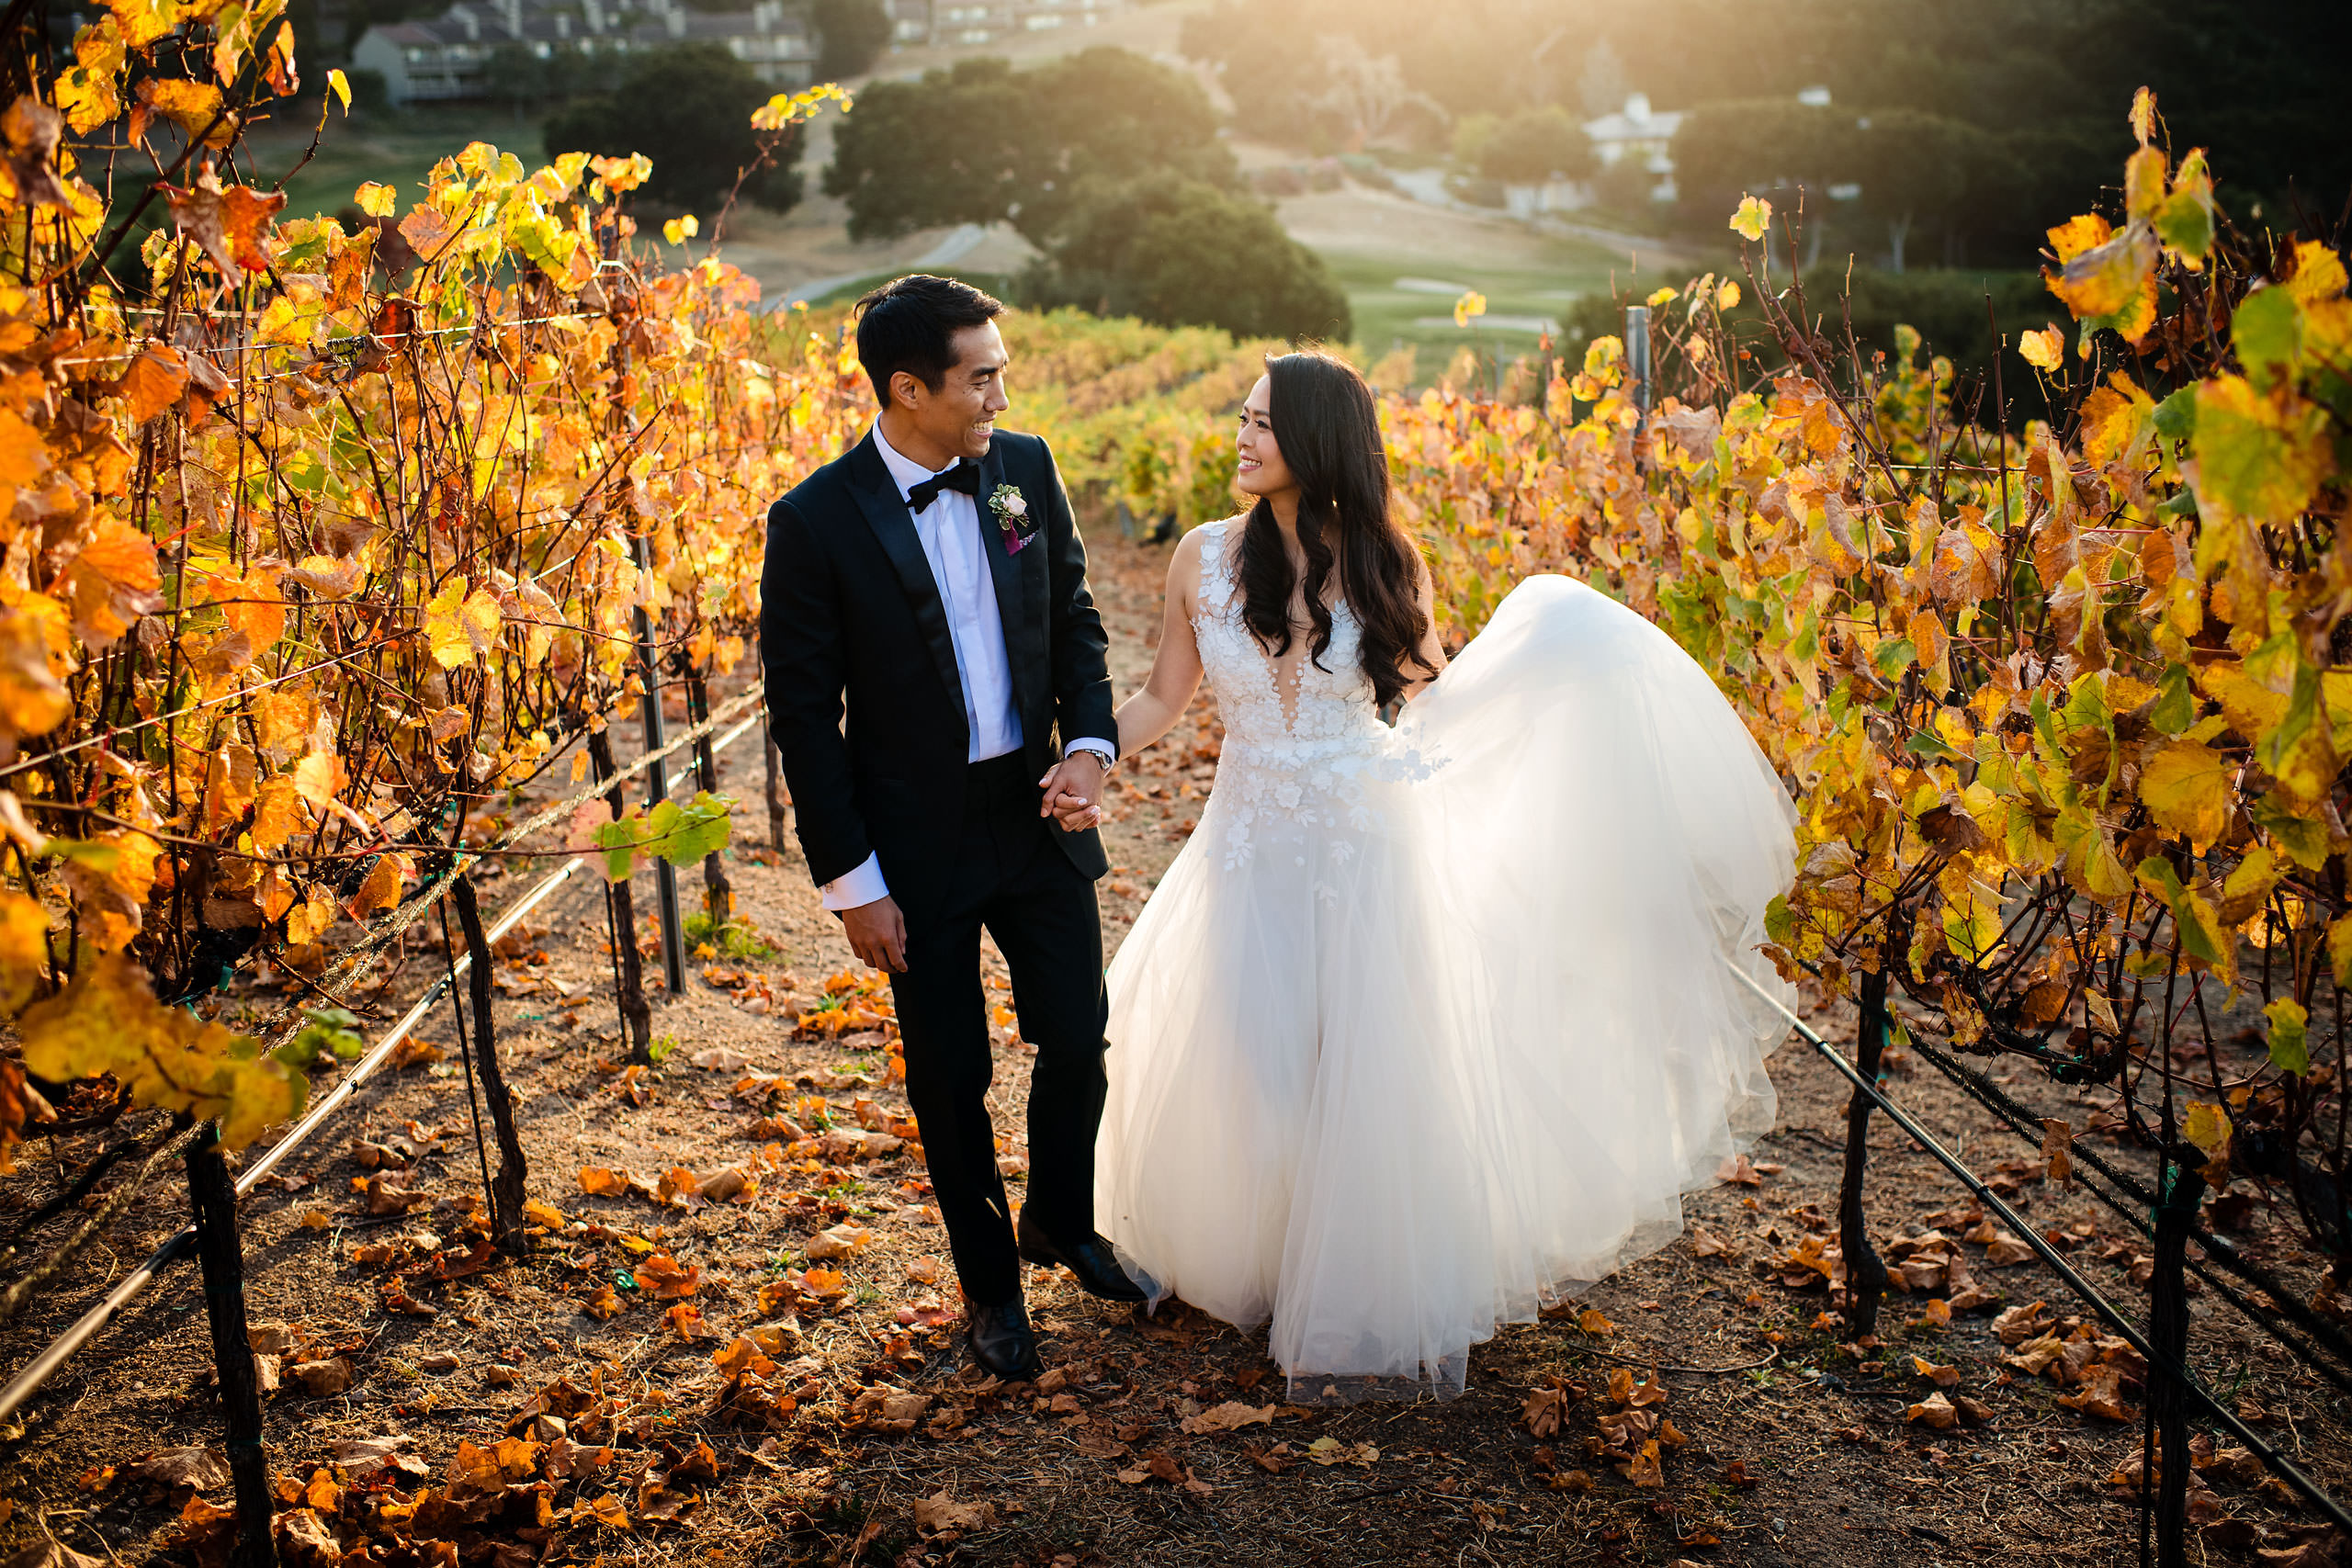 Bride and groom walking through a vinyard by Carmel Valley Ranch Wedding Photographer Sean LeBlanc